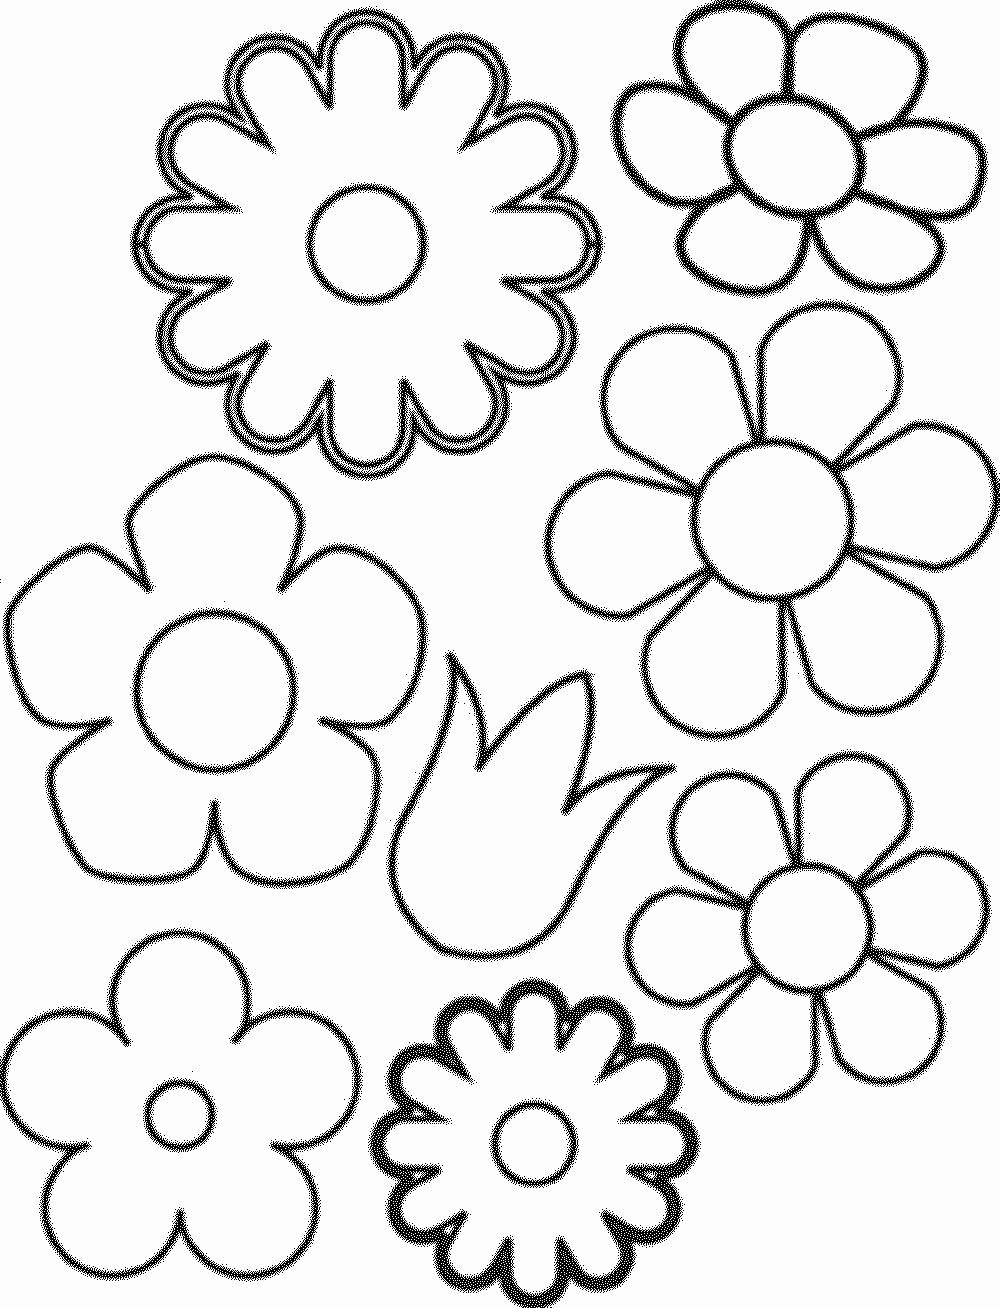 Easy Flower Coloring Pages Best Of Drawing Pages Flowers At Getdrawings In 2020 Flower Coloring Pages Flower Printable Mandala Coloring Pages